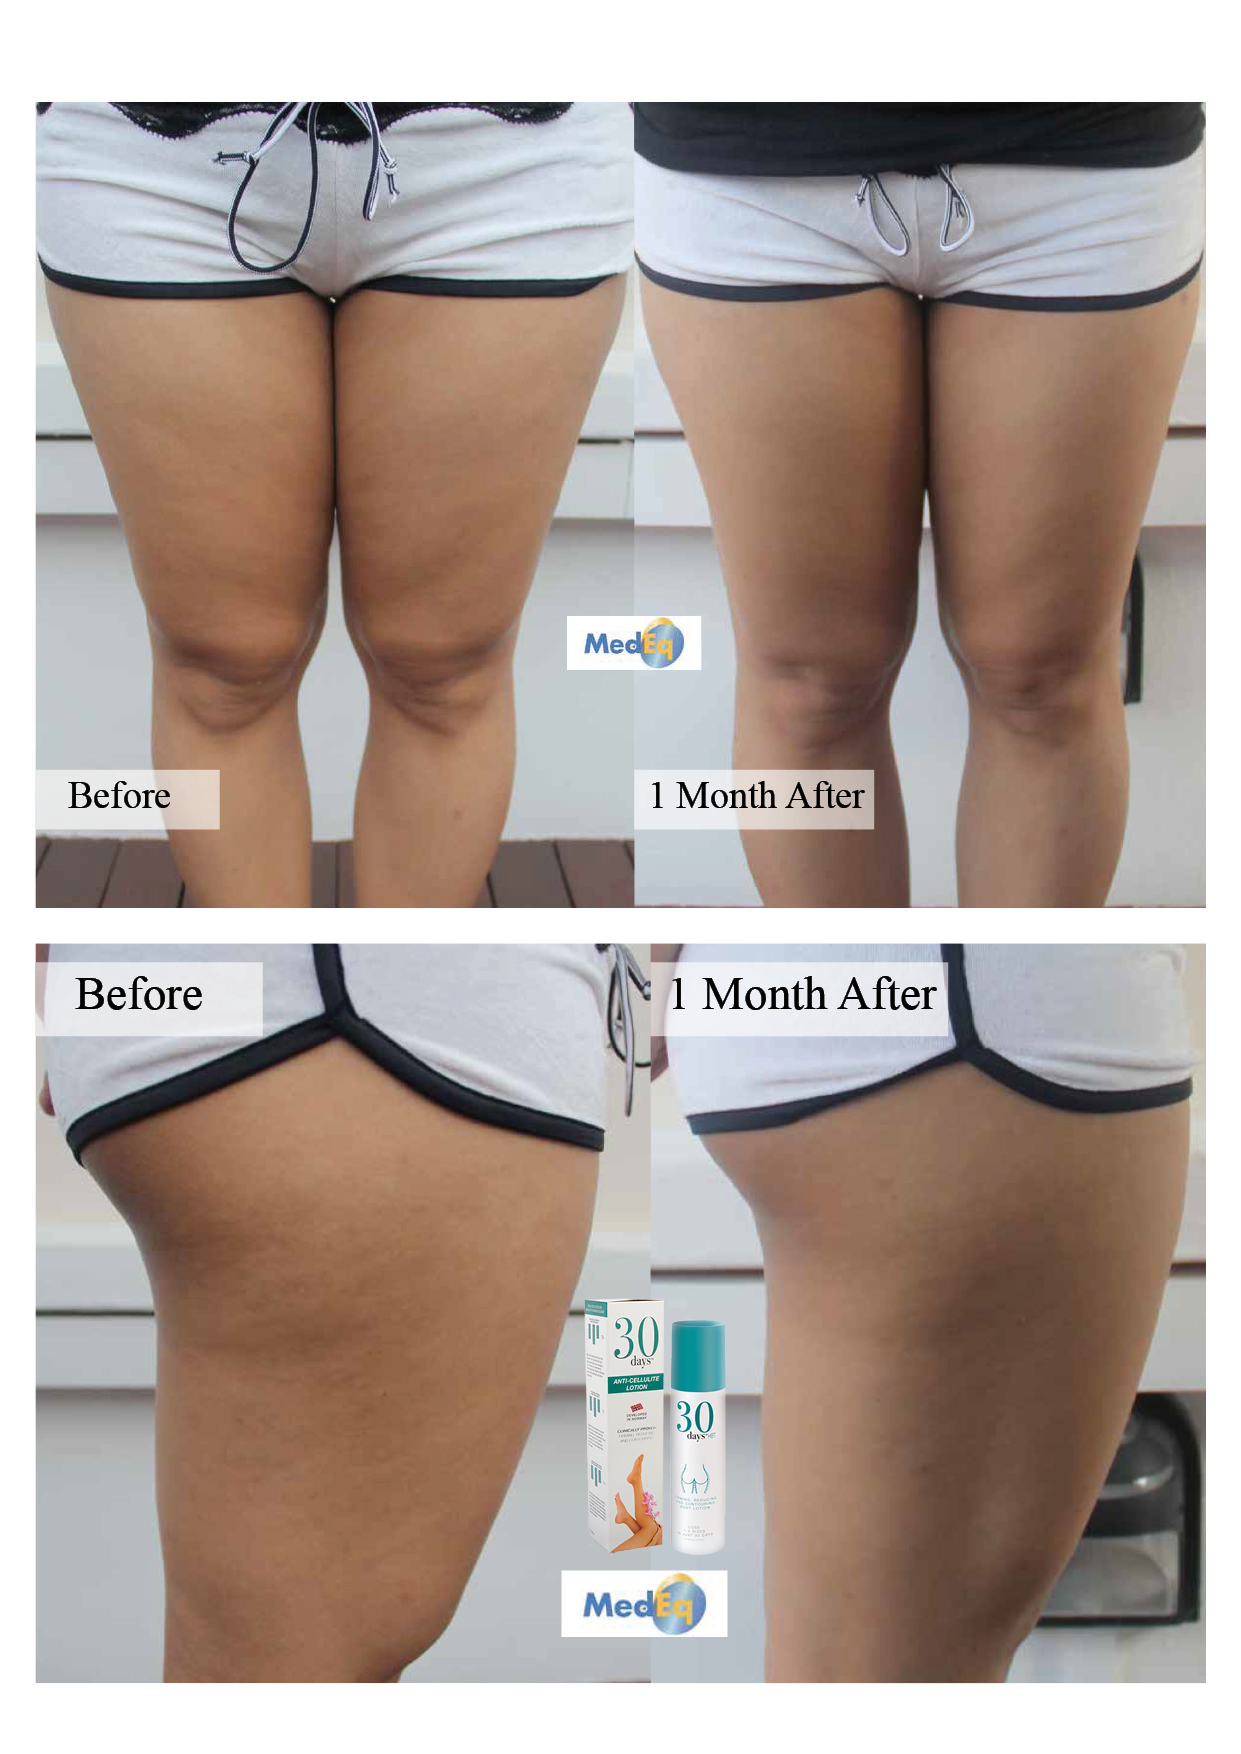 30days Anti-cellulite Lotion Before & After Review